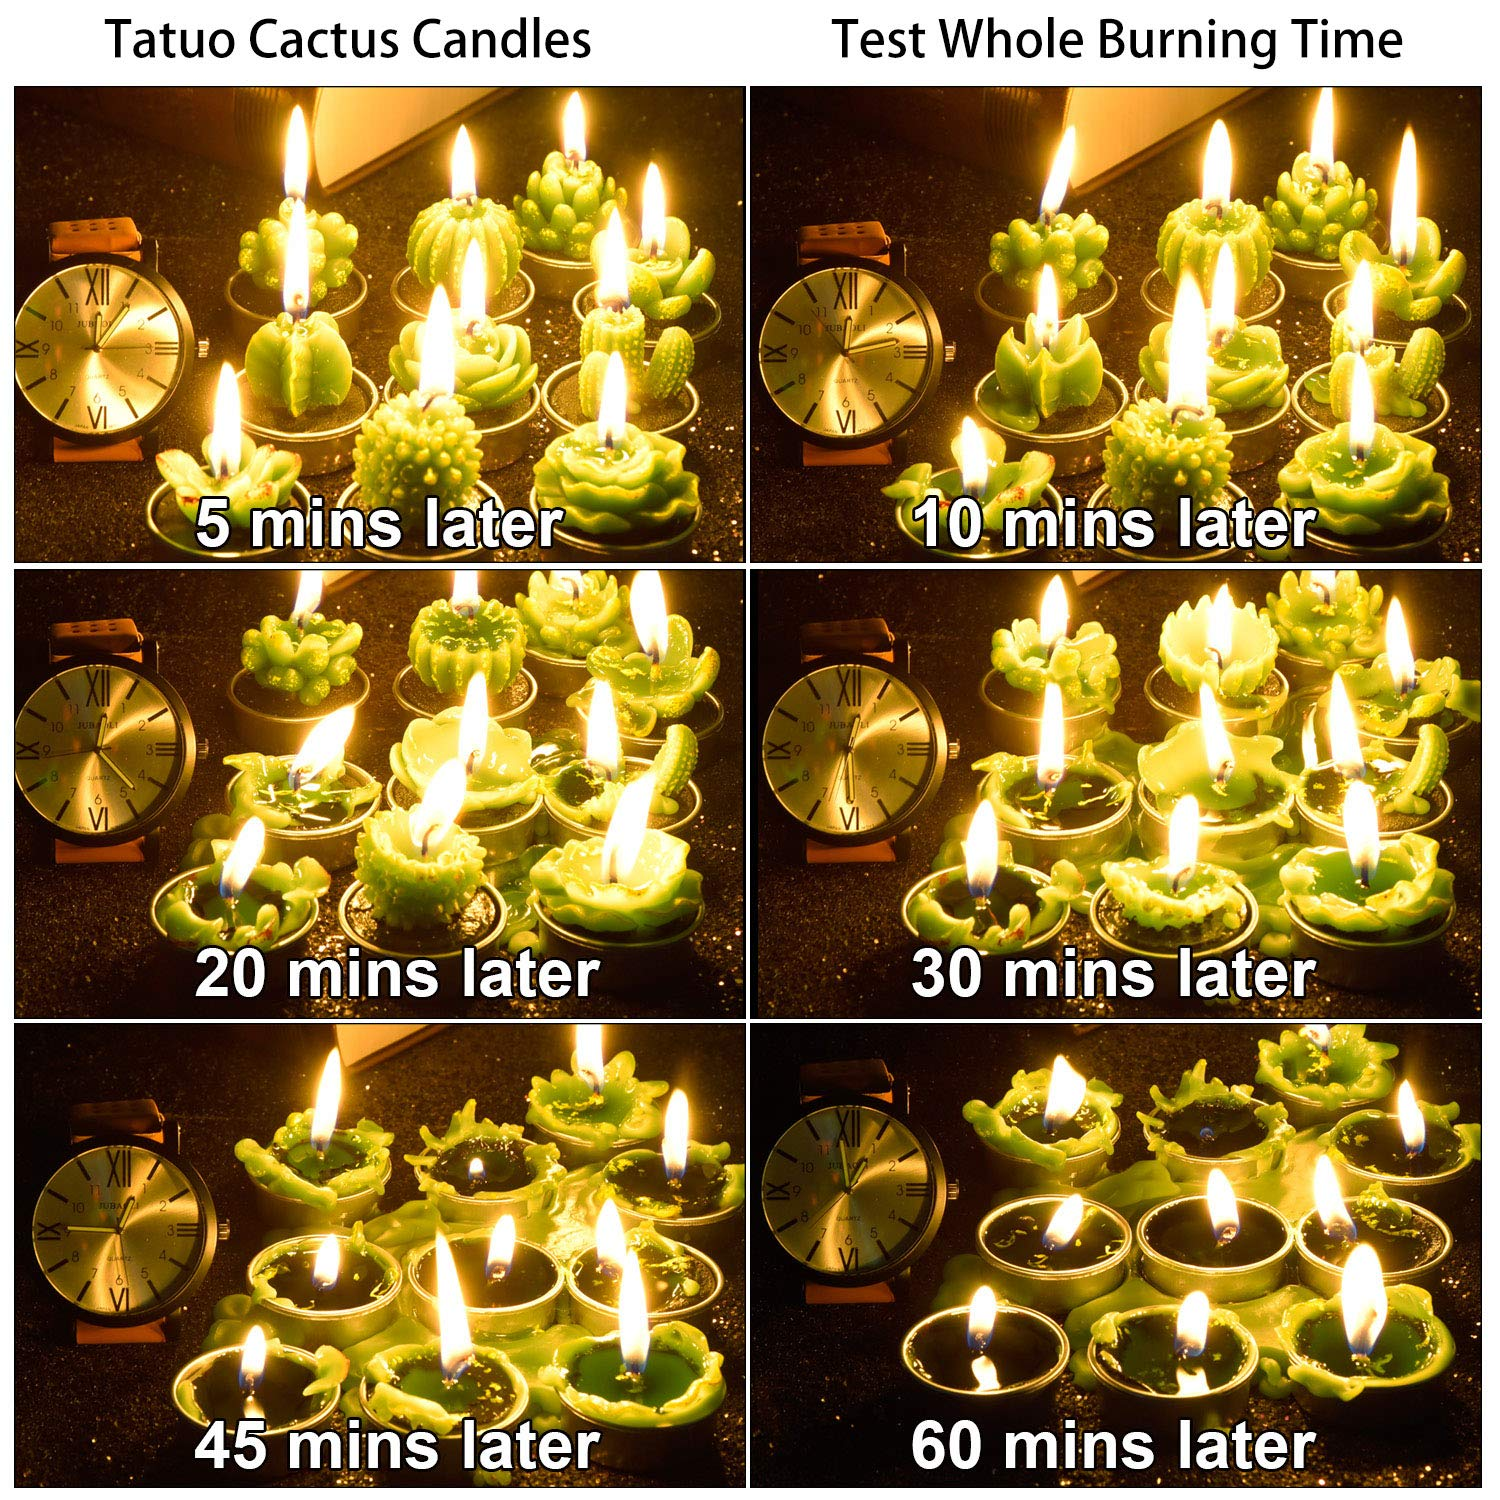 Tatuo 12 Pieces Cactus Candles Succulent Cactus Rose Tealight Handmade Candles for Teatime Spa Home Party Wedding Decoration Gifts by Tatuo (Image #7)